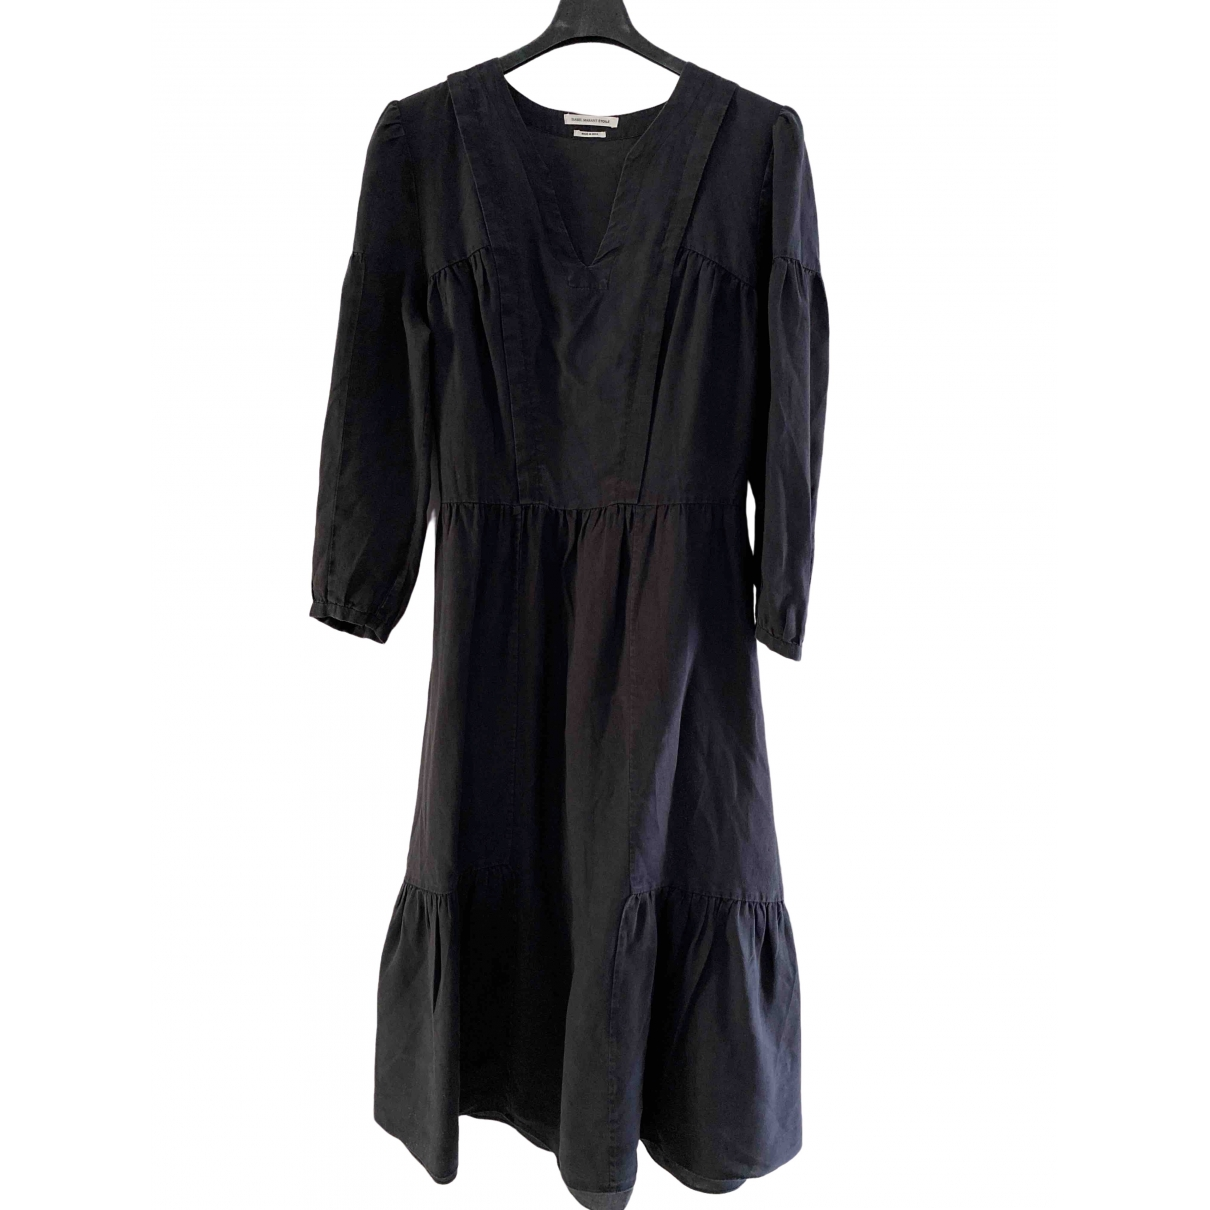 Isabel Marant Etoile \N Black Linen dress for Women 38 FR